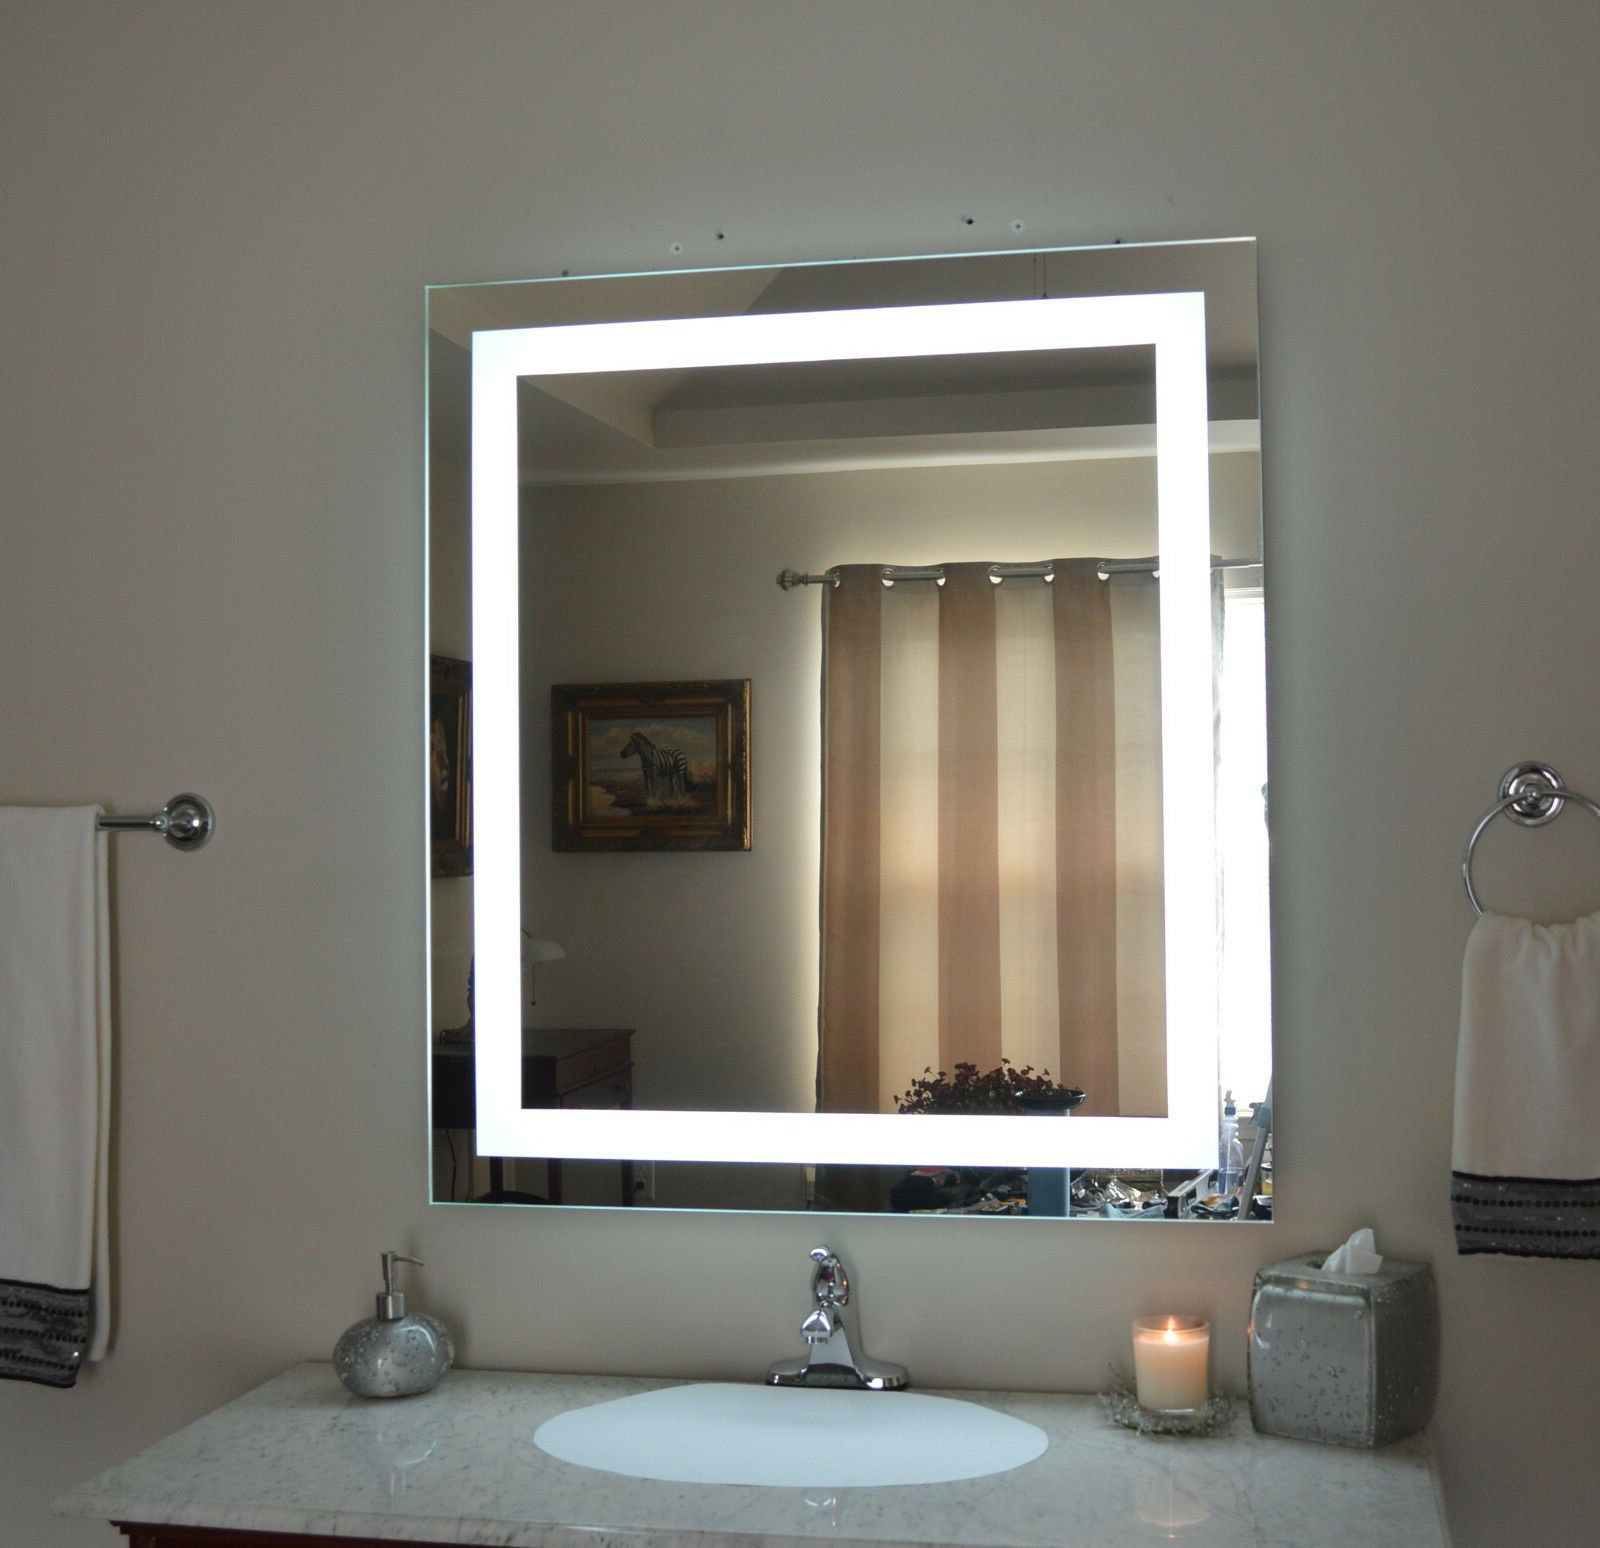 Light Up Wall Mirror Led Grow Light Depot Light Up Wall Mirror Bathroom Inside Popular Light Up Wall Mirrors (Gallery 14 of 20)